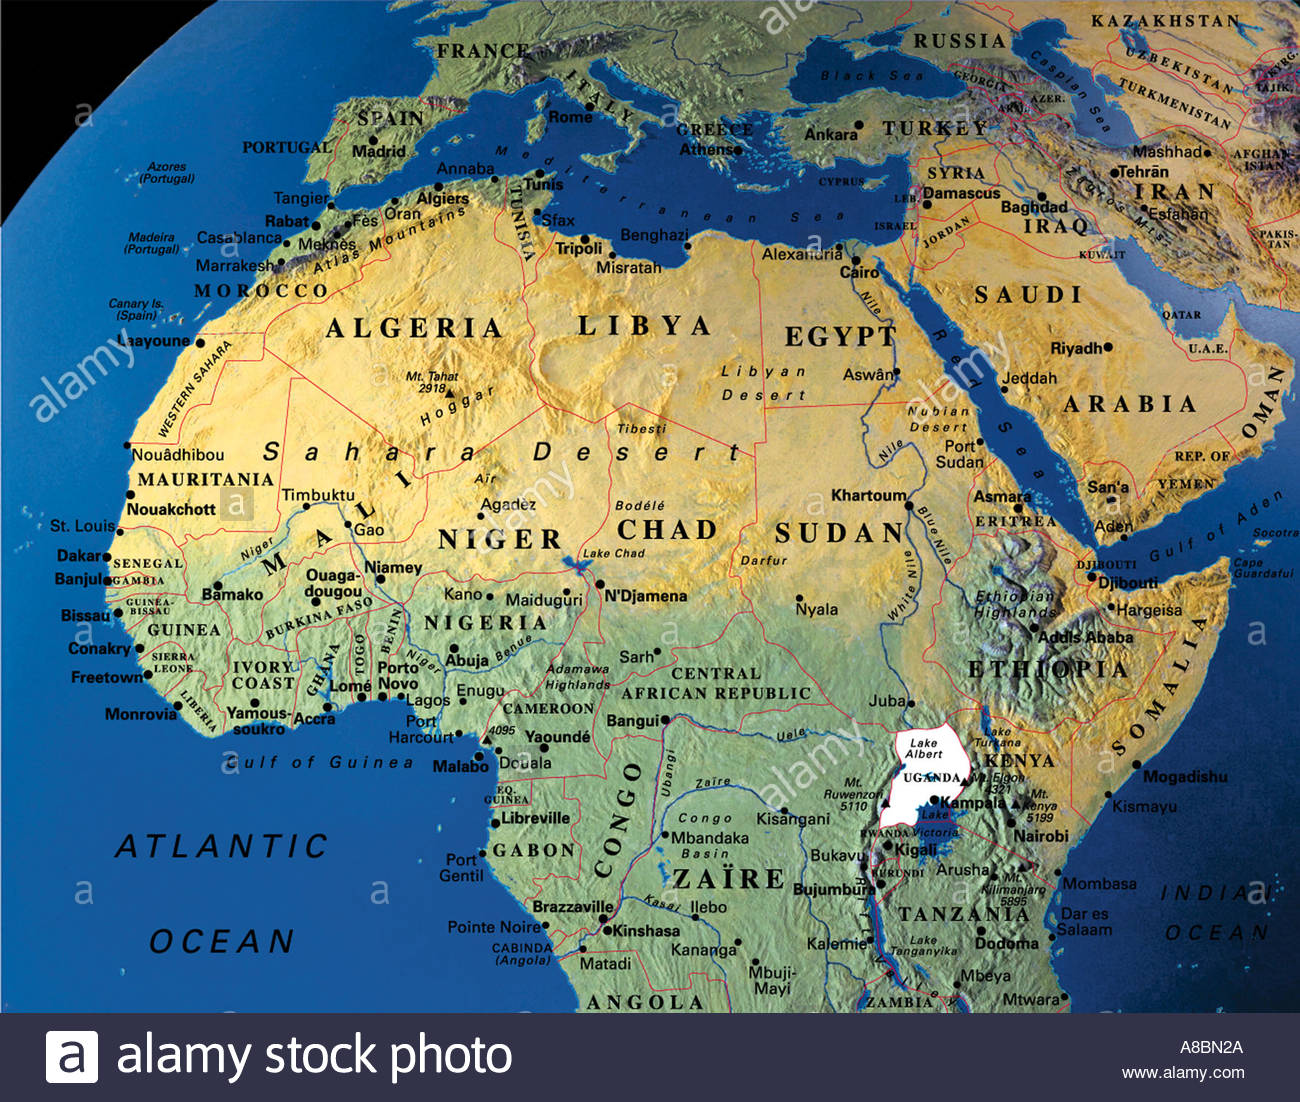 Globe map maps africa middle east stock photo royalty free image globe map maps africa middle east sciox Choice Image